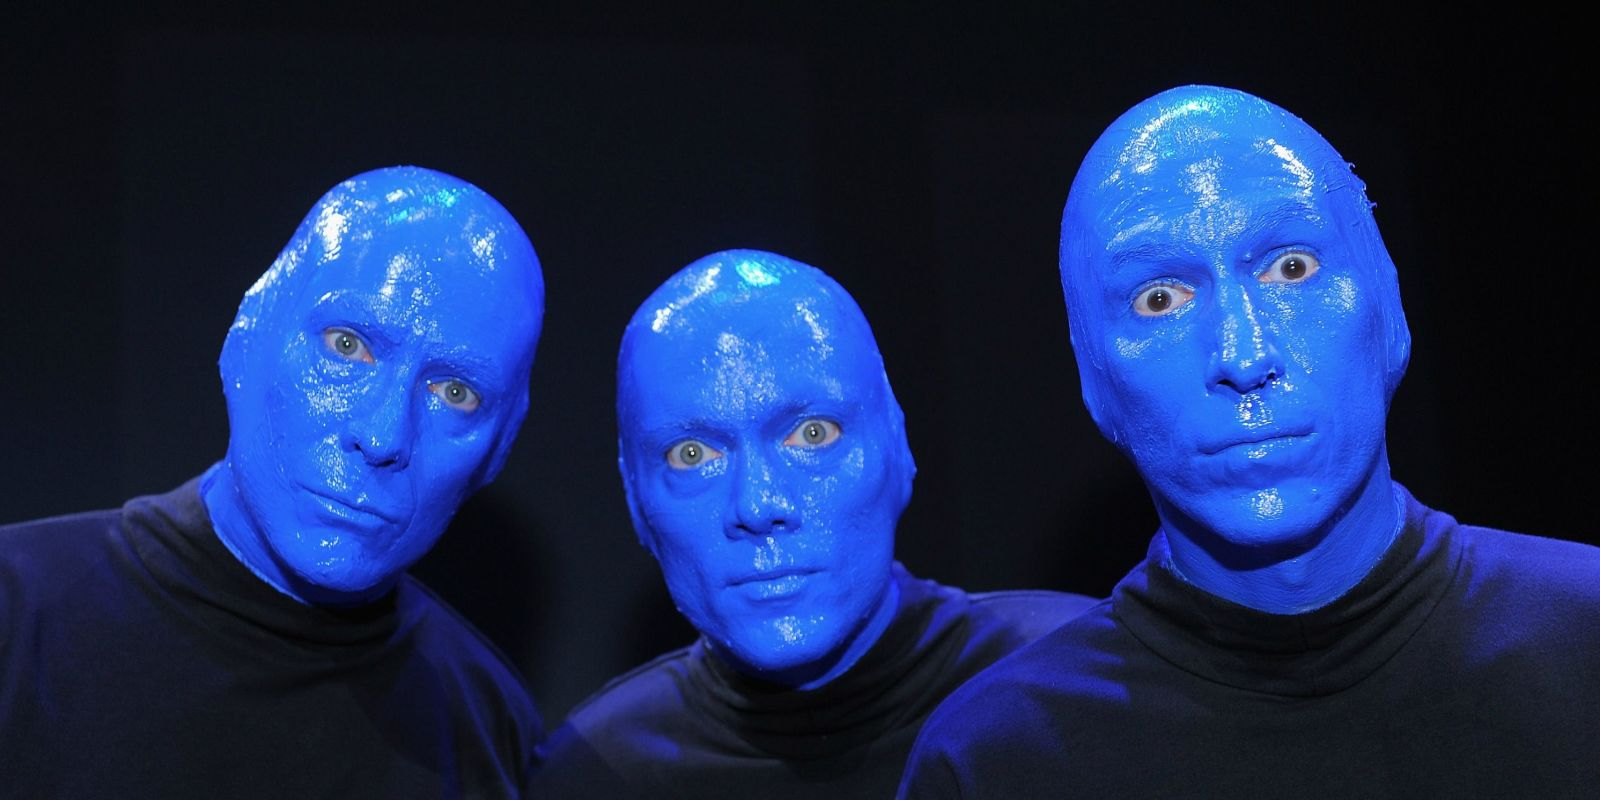 Blue Man Group Dj 9